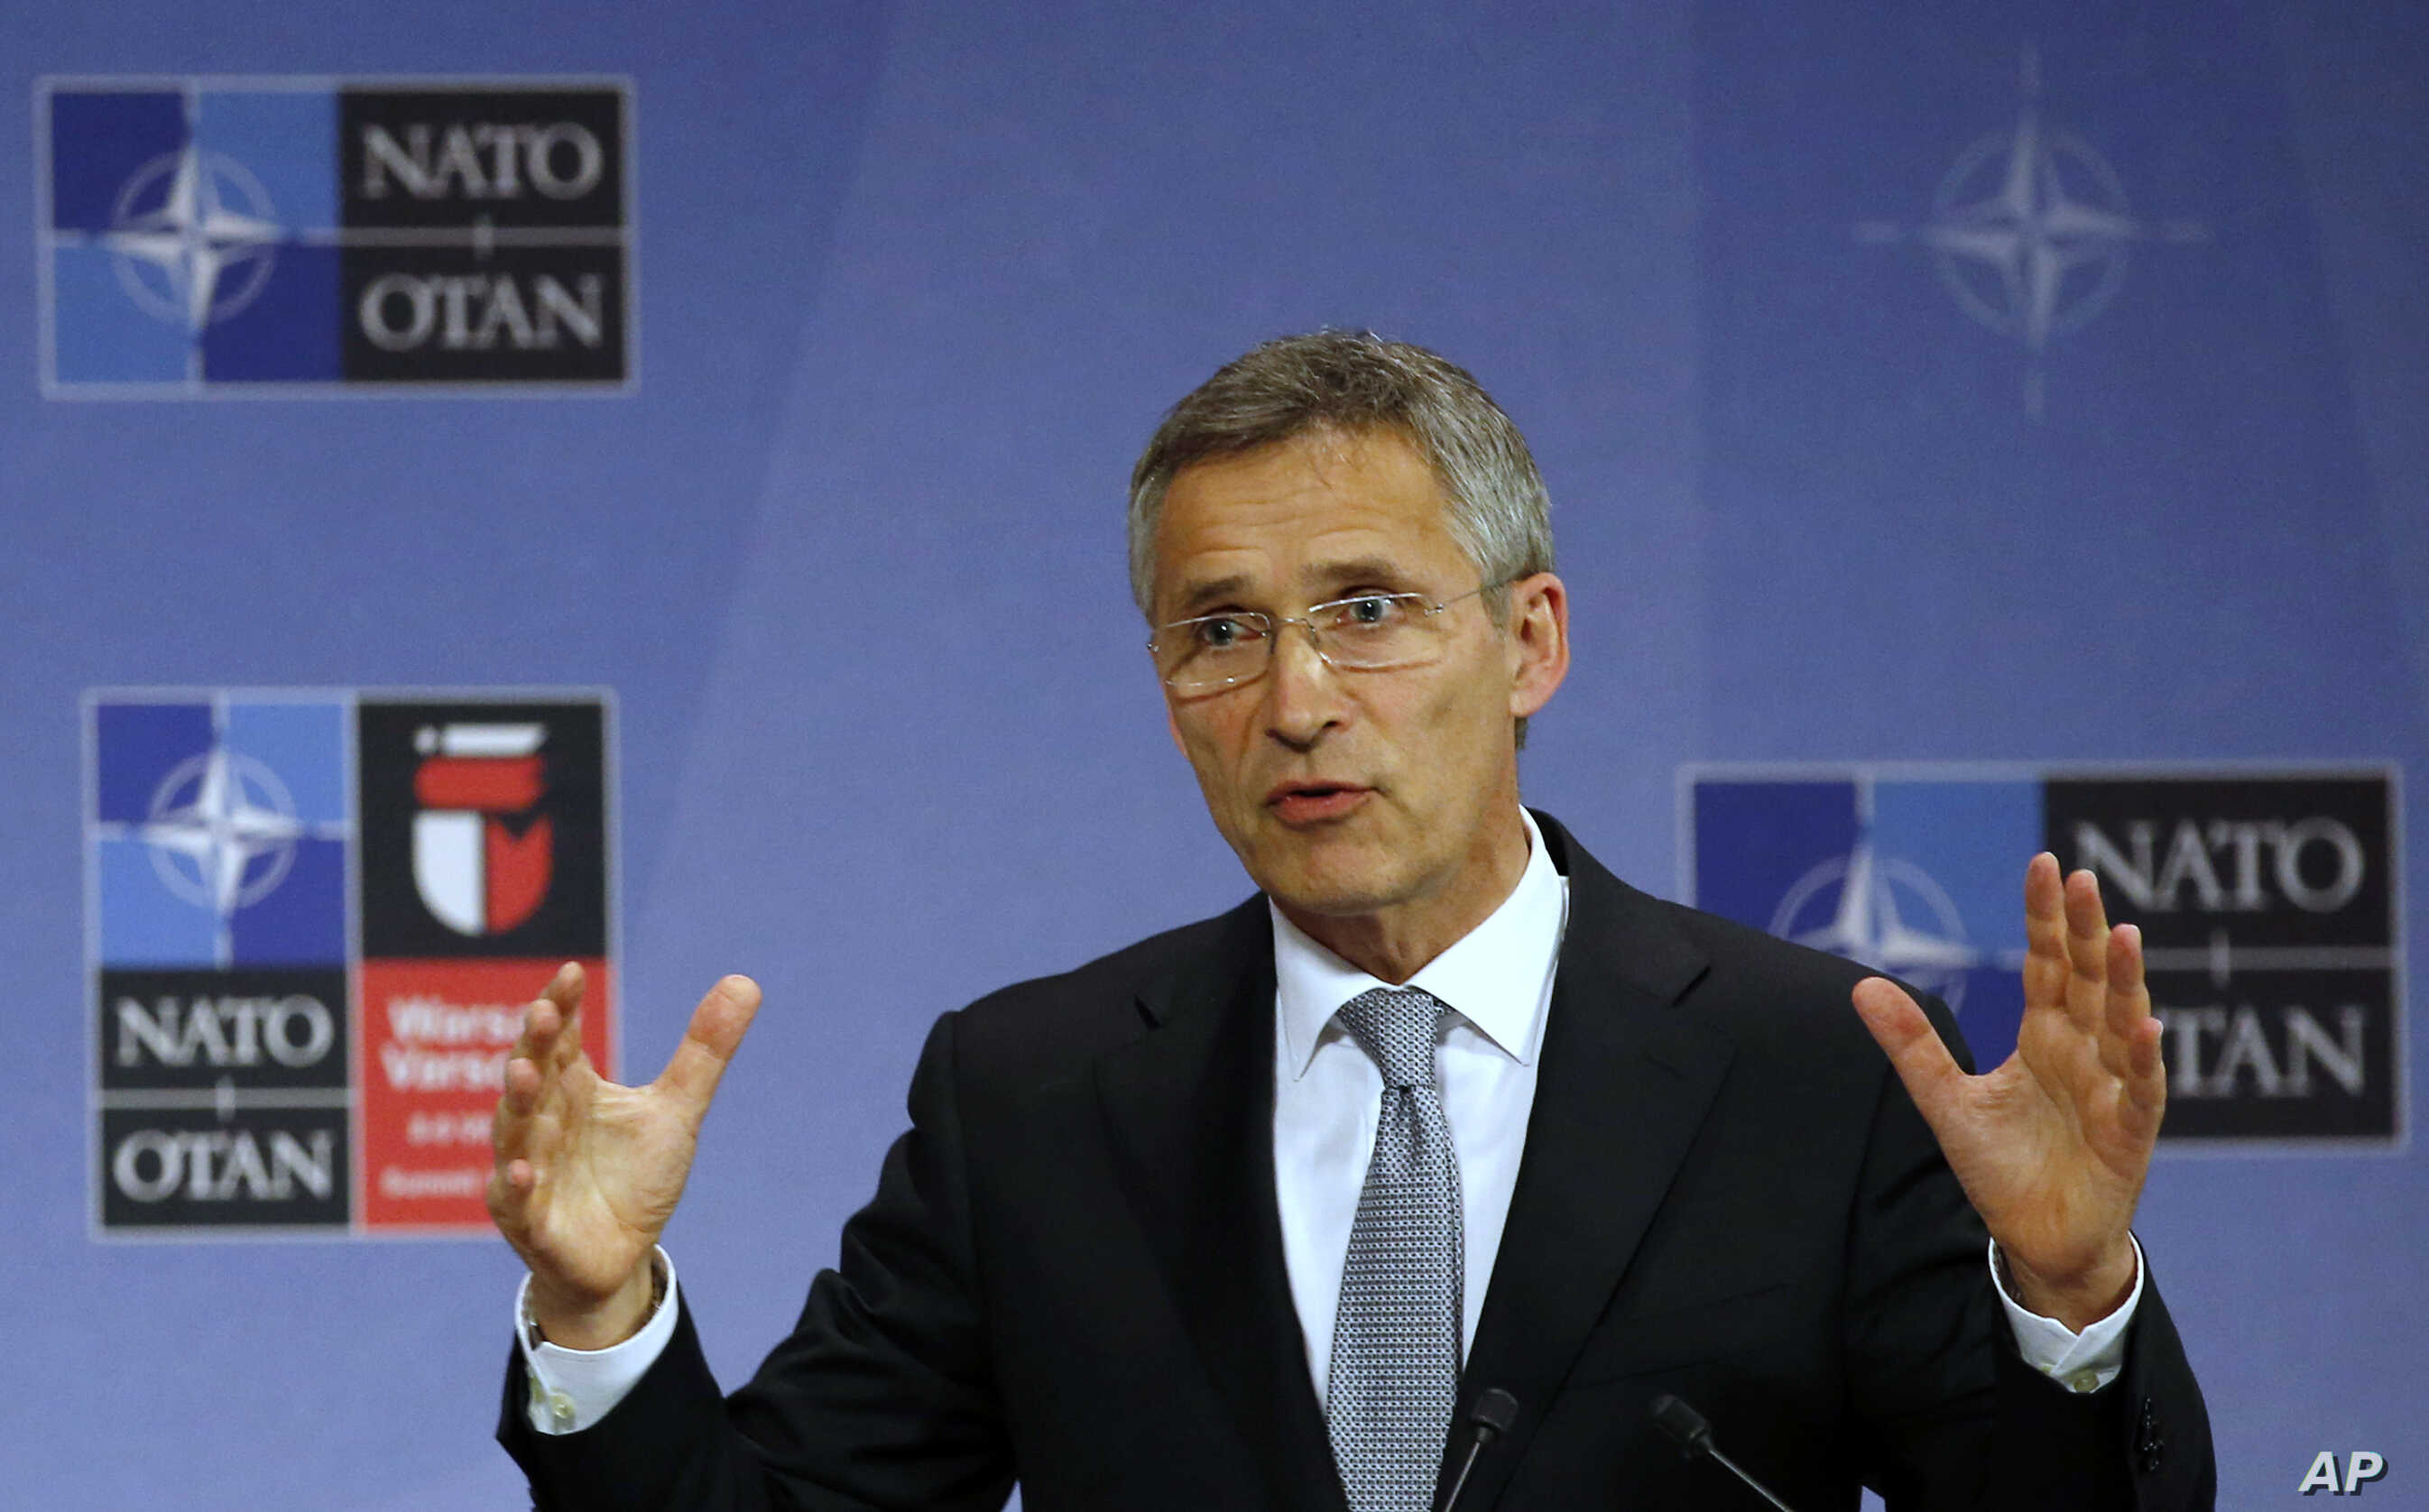 FILE - NATO Secretary General Jens Stoltenberg speaks during a news conference at NATO headquarters in Brussels, Belgium.